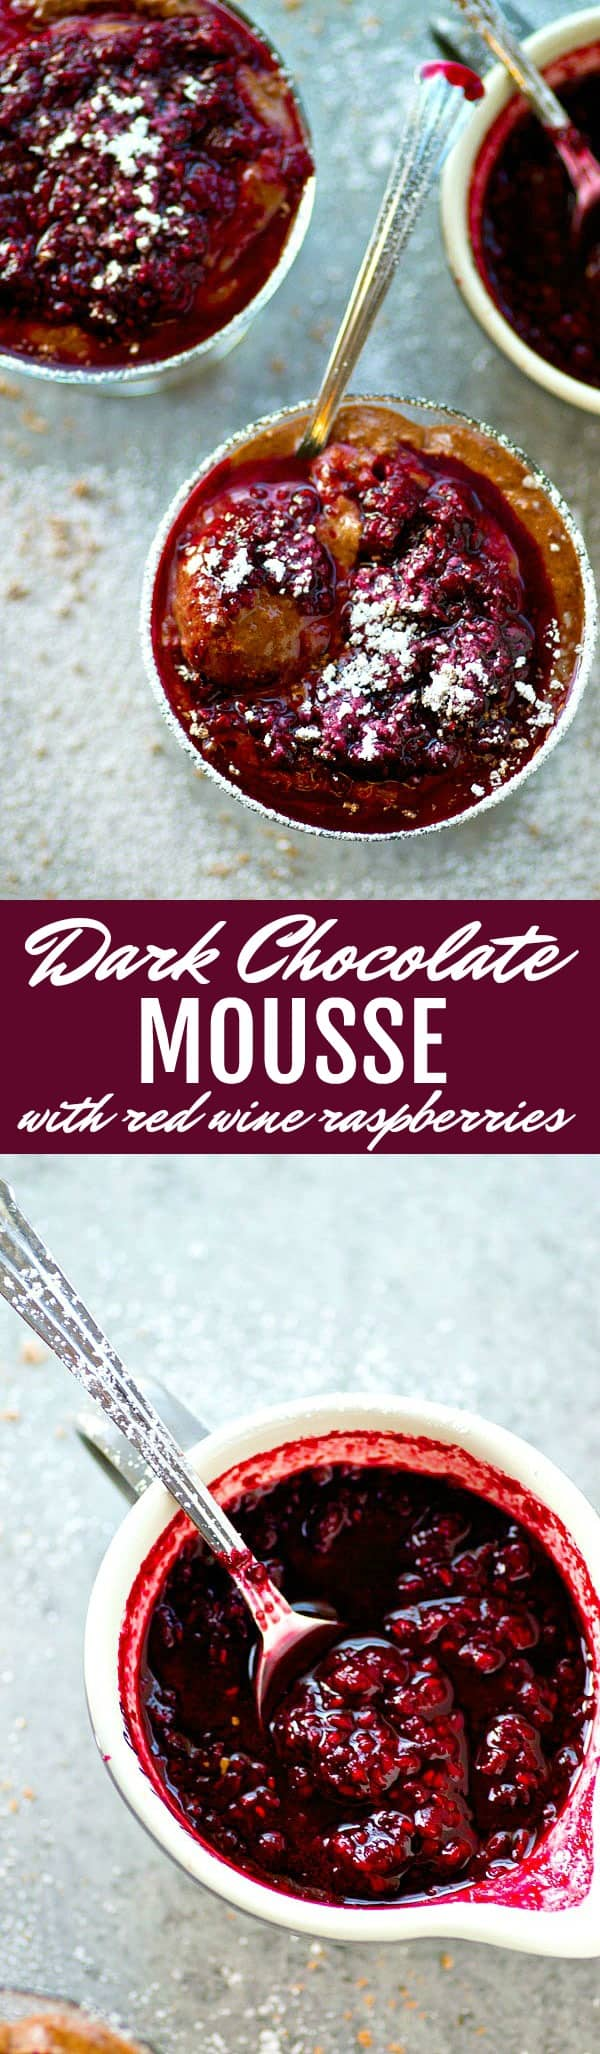 Dark chocolate mousse and a luscious red wine raspberry sauce are a match made in heaven in this stunner dessert. Perfect for a romantic dessert or whenever that chocolate craving hits!